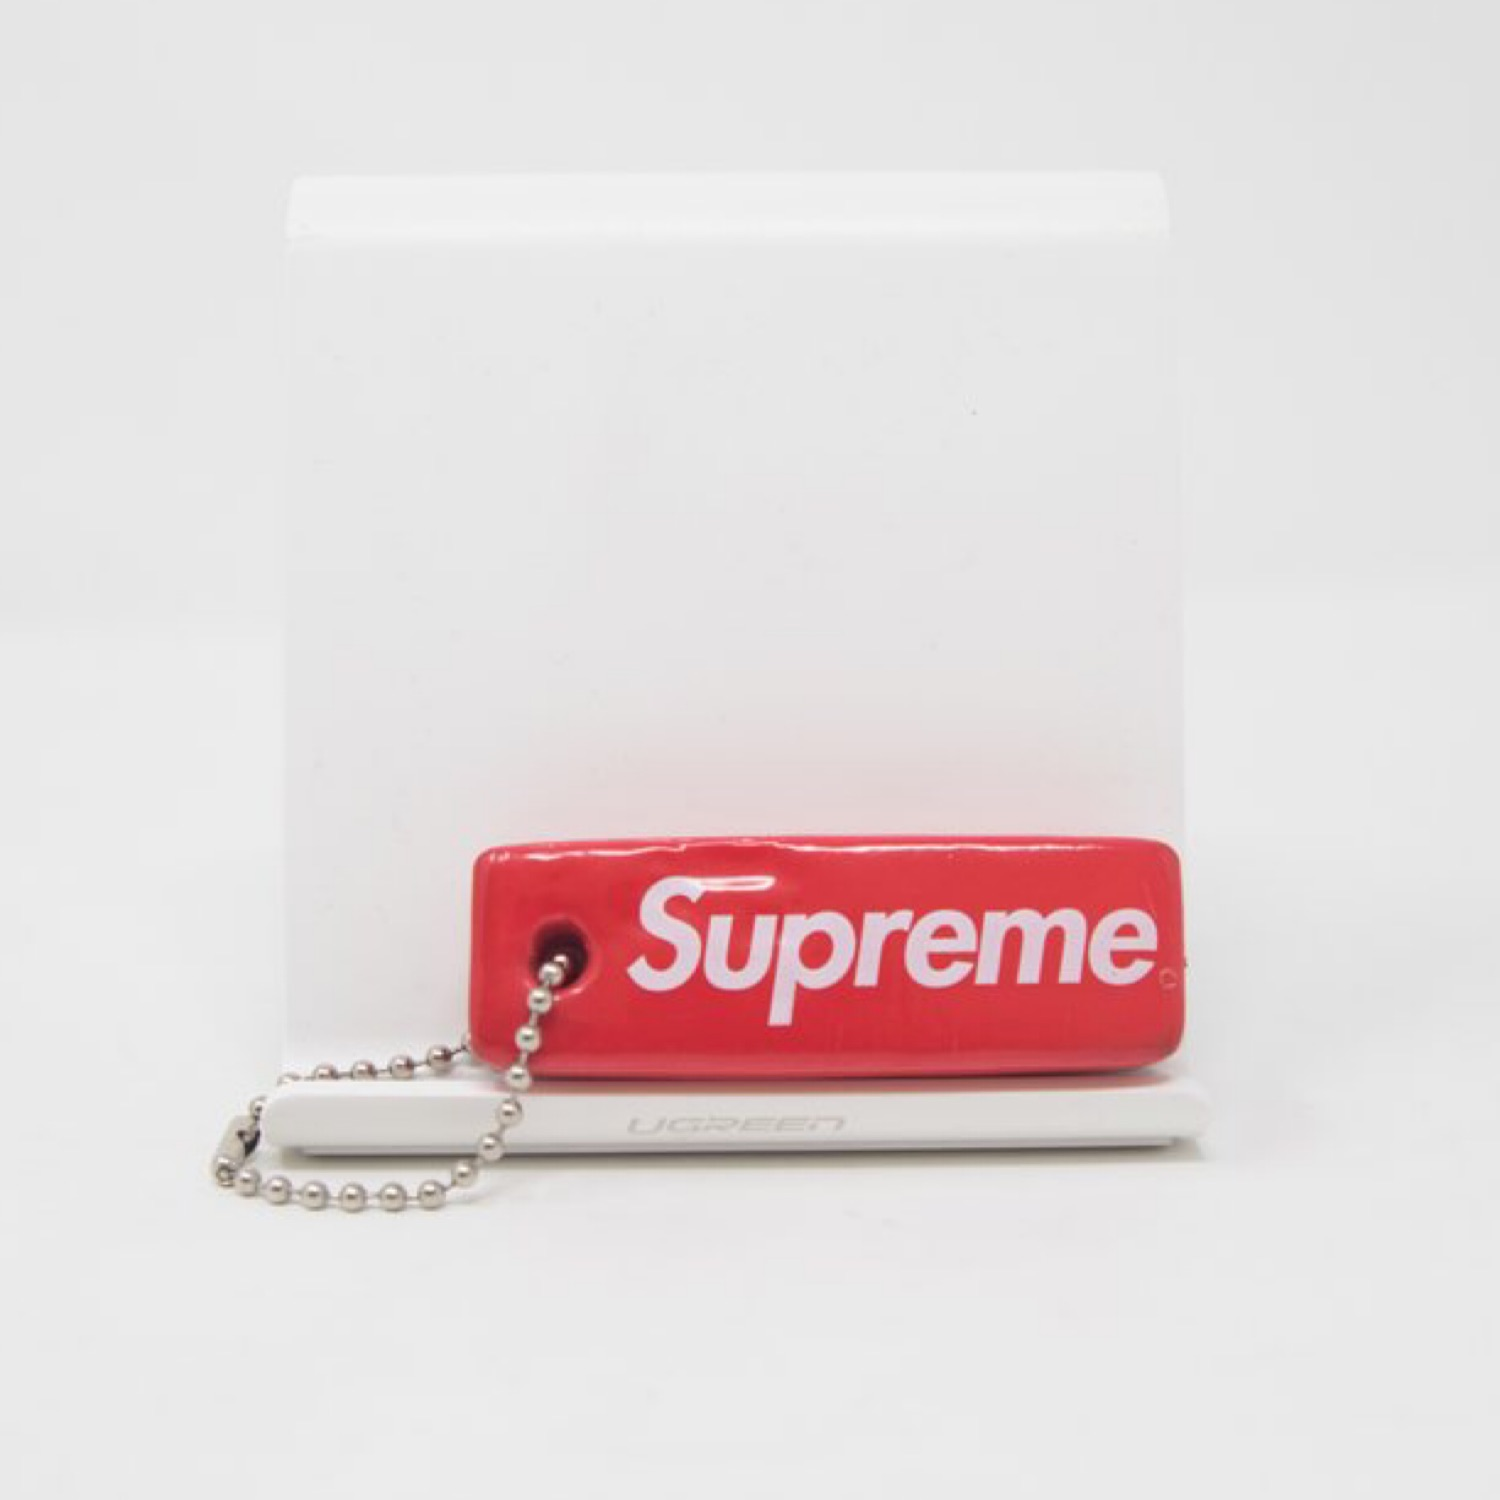 Supreme Puffy Keychain Red (Used - 2007)